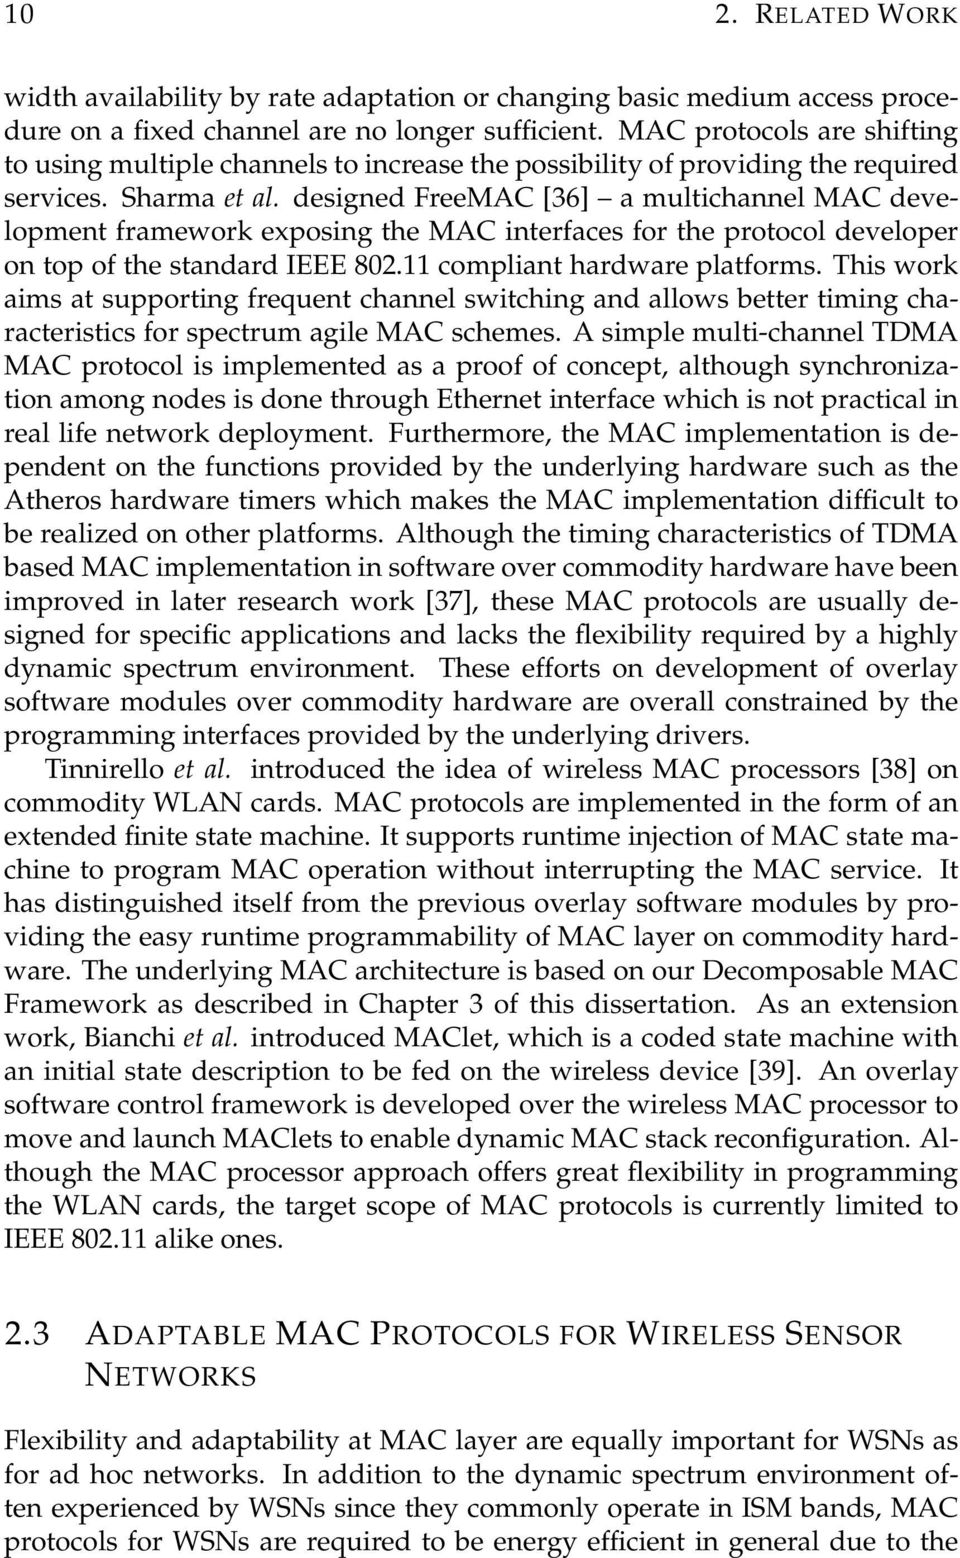 designed FreeMAC [36] a multichannel MAC development framework exposing the MAC interfaces for the protocol developer on top of the standard IEEE 802.11 compliant hardware platforms.